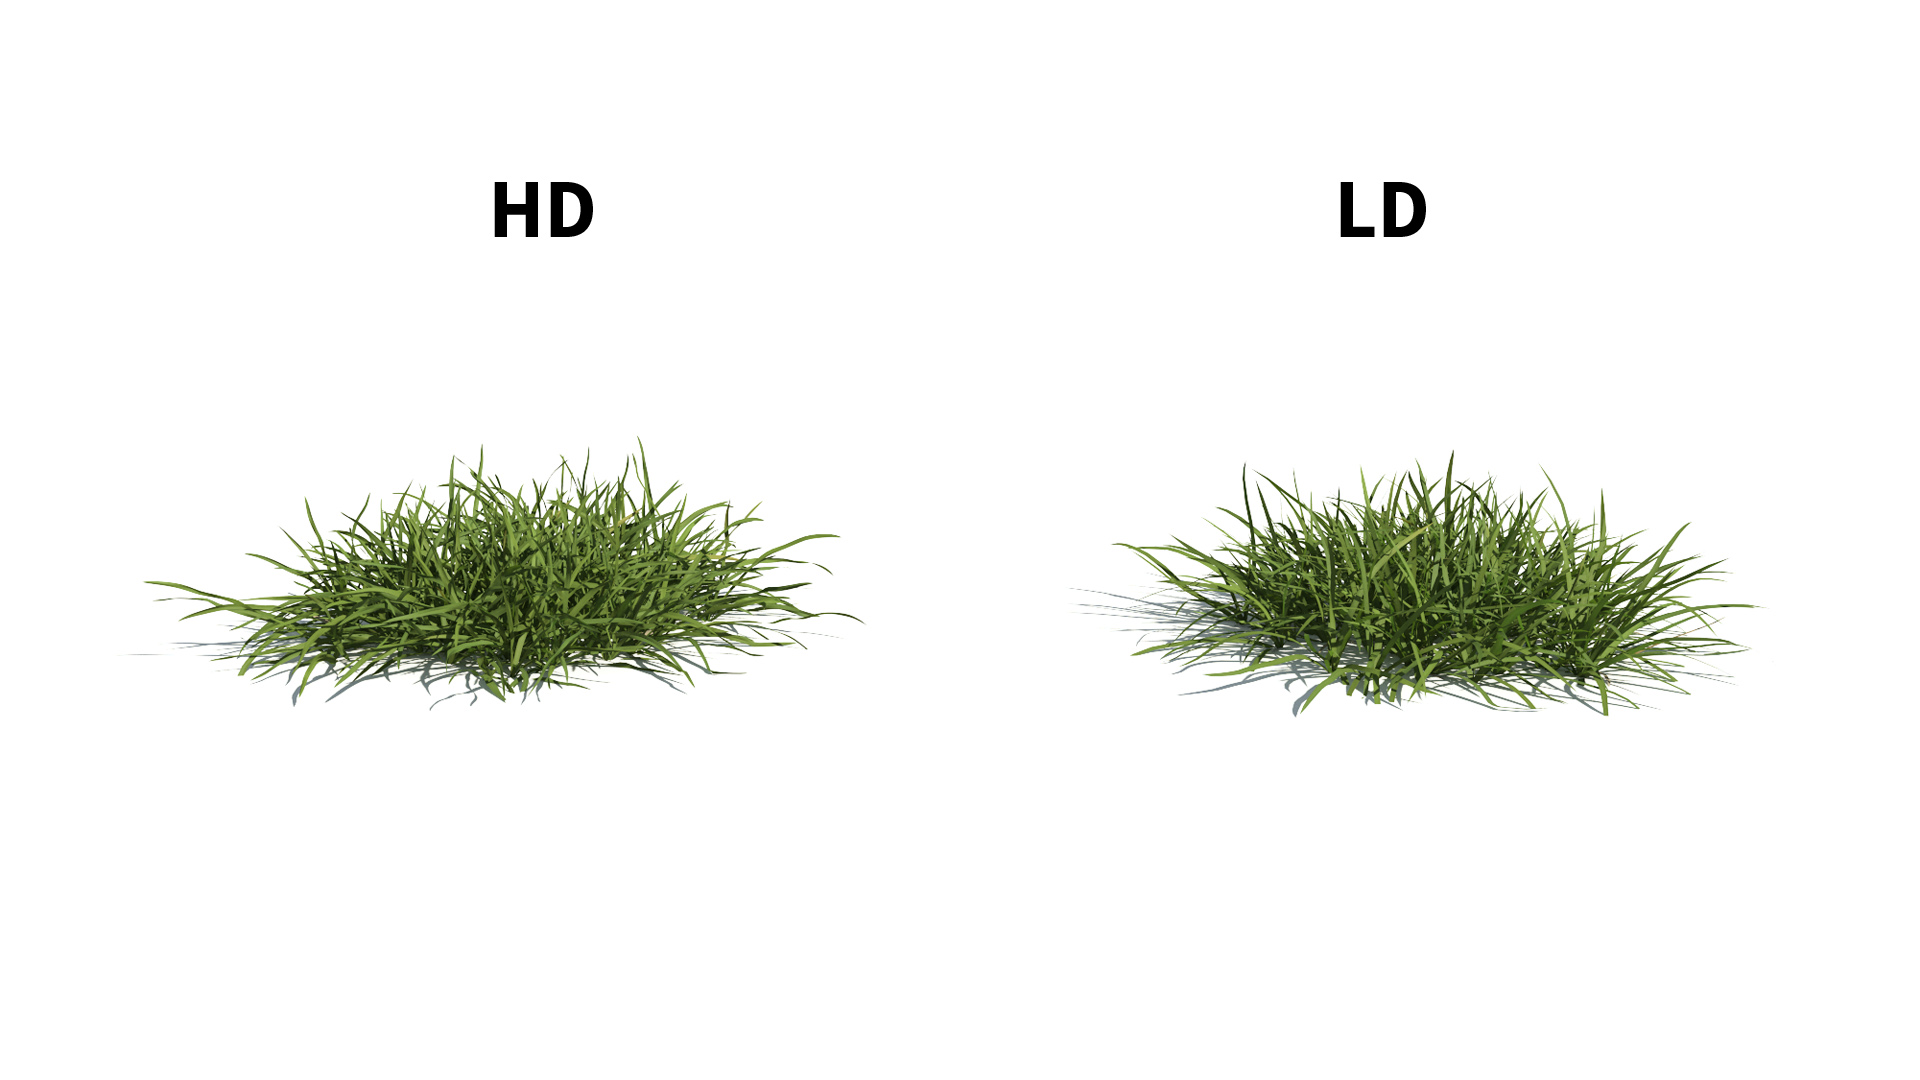 3D model of the Generic grass and lawn engine Generic grass lawn included versions